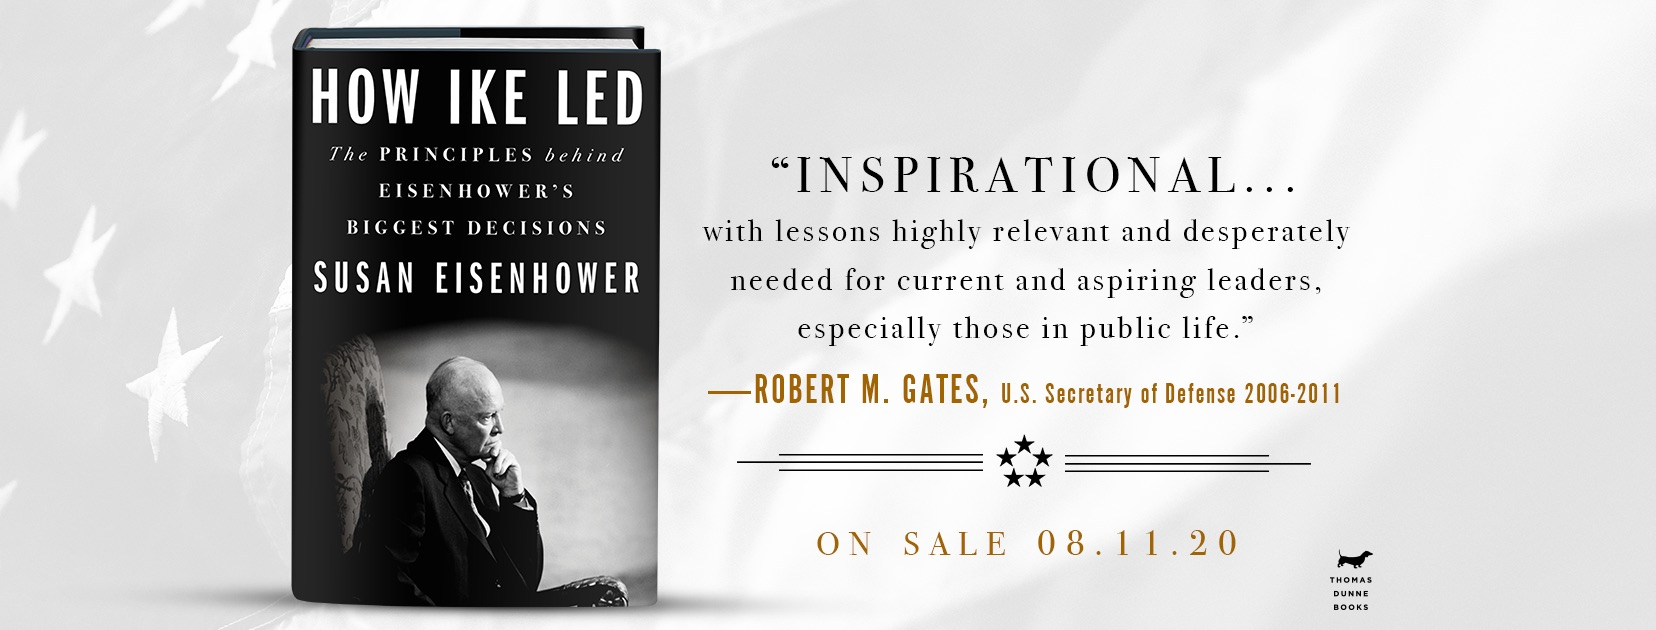 """How Ike Led: """"Inspirational… with lessons highly relevant and desperately needed for current and aspiring leaders."""" –Robert M. Gates"""